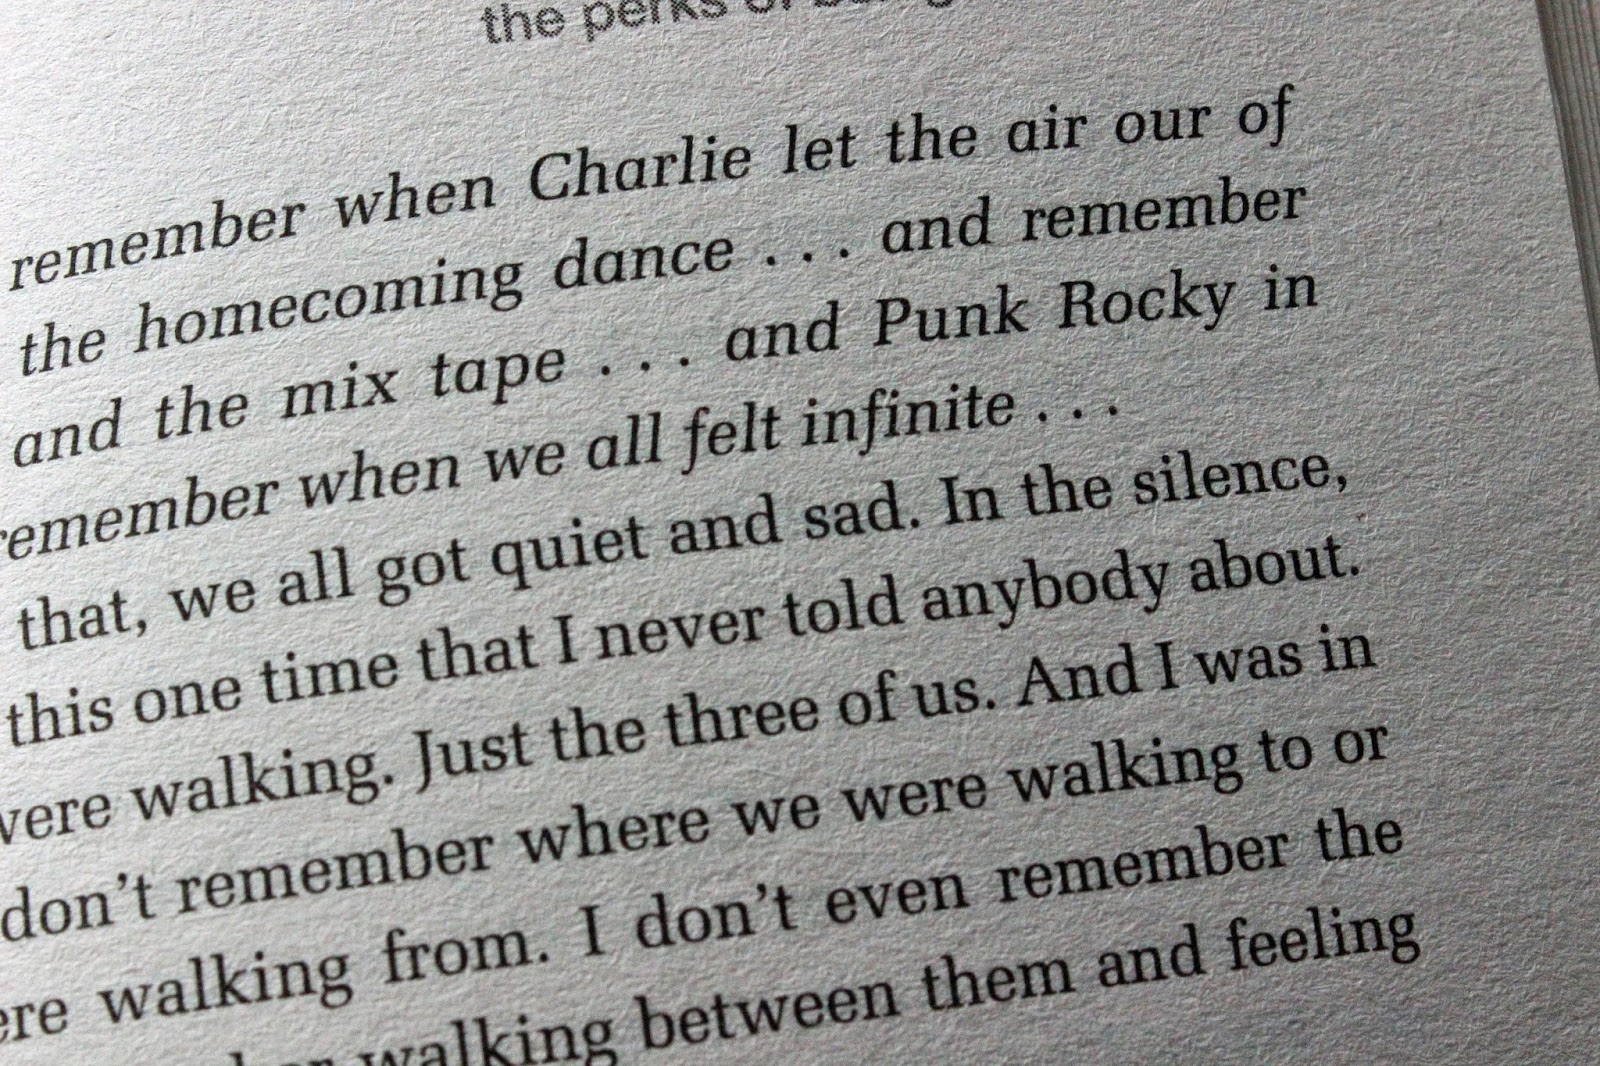 Page from the perks of being a wallflower